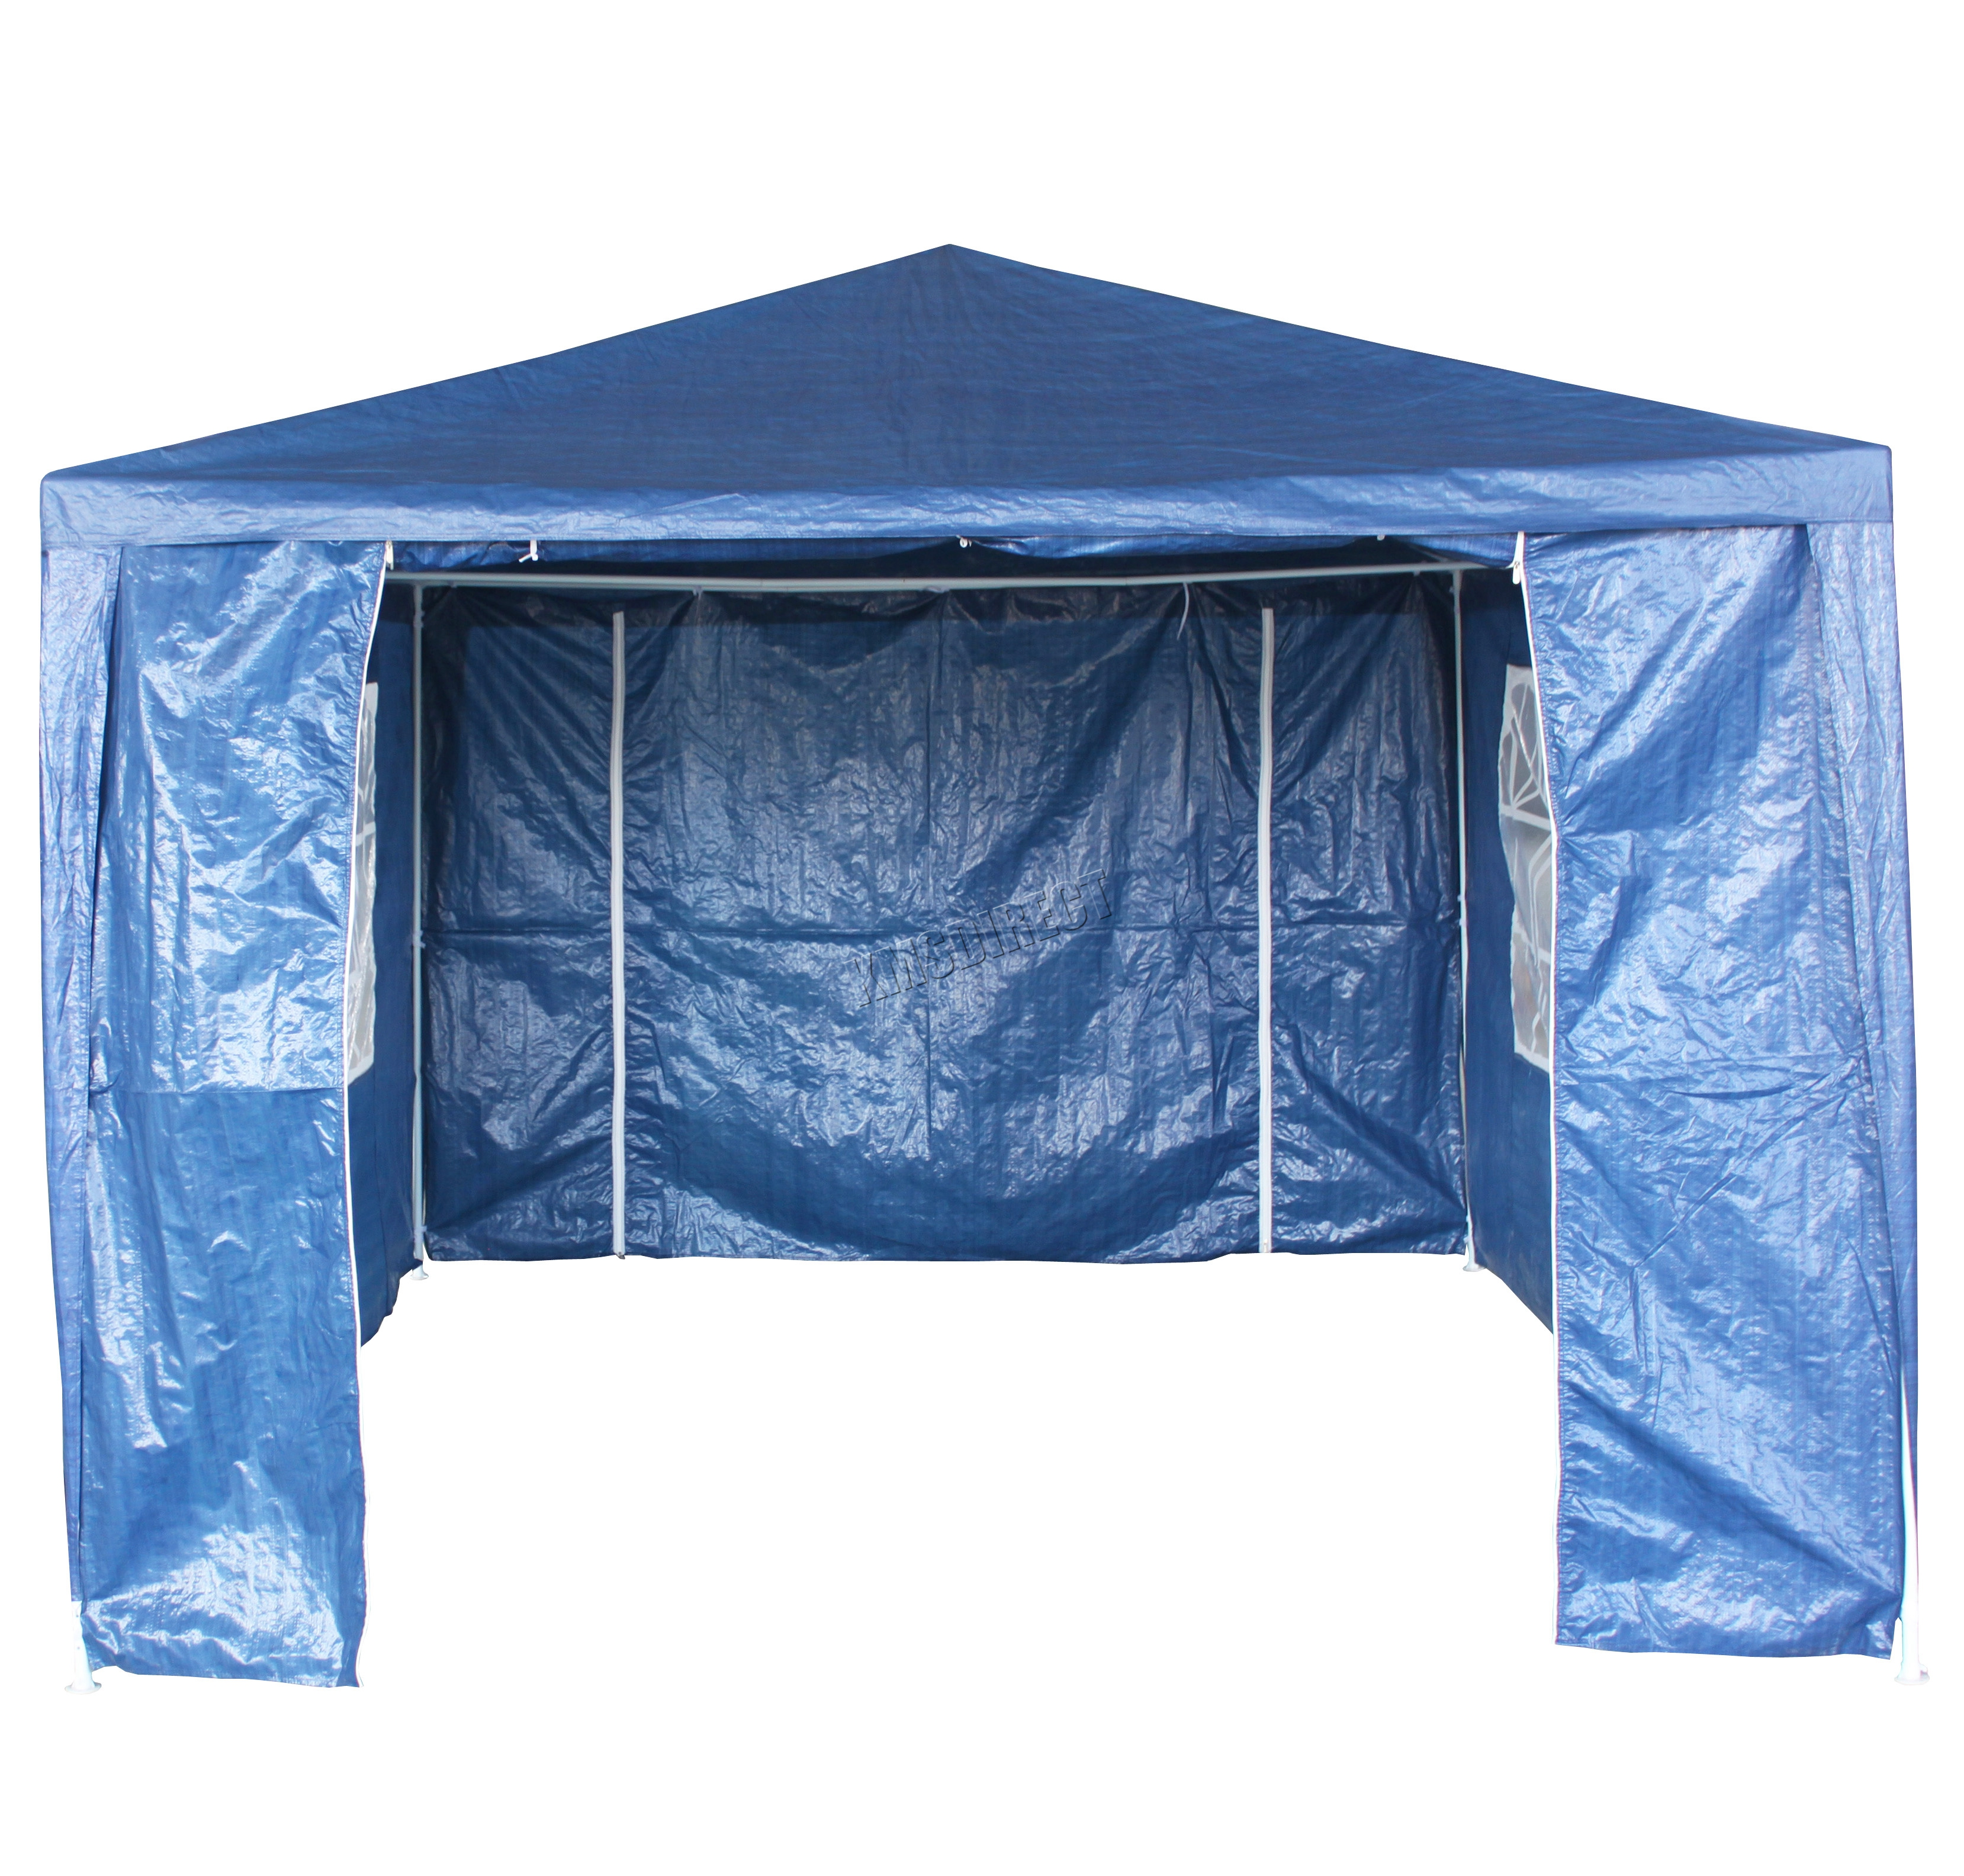 Garden gazebo 3 x 4m - Sentinel Waterproof Blue 3m X 4m Outdoor Garden Gazebo Party Tent Marquee Awning Canopy